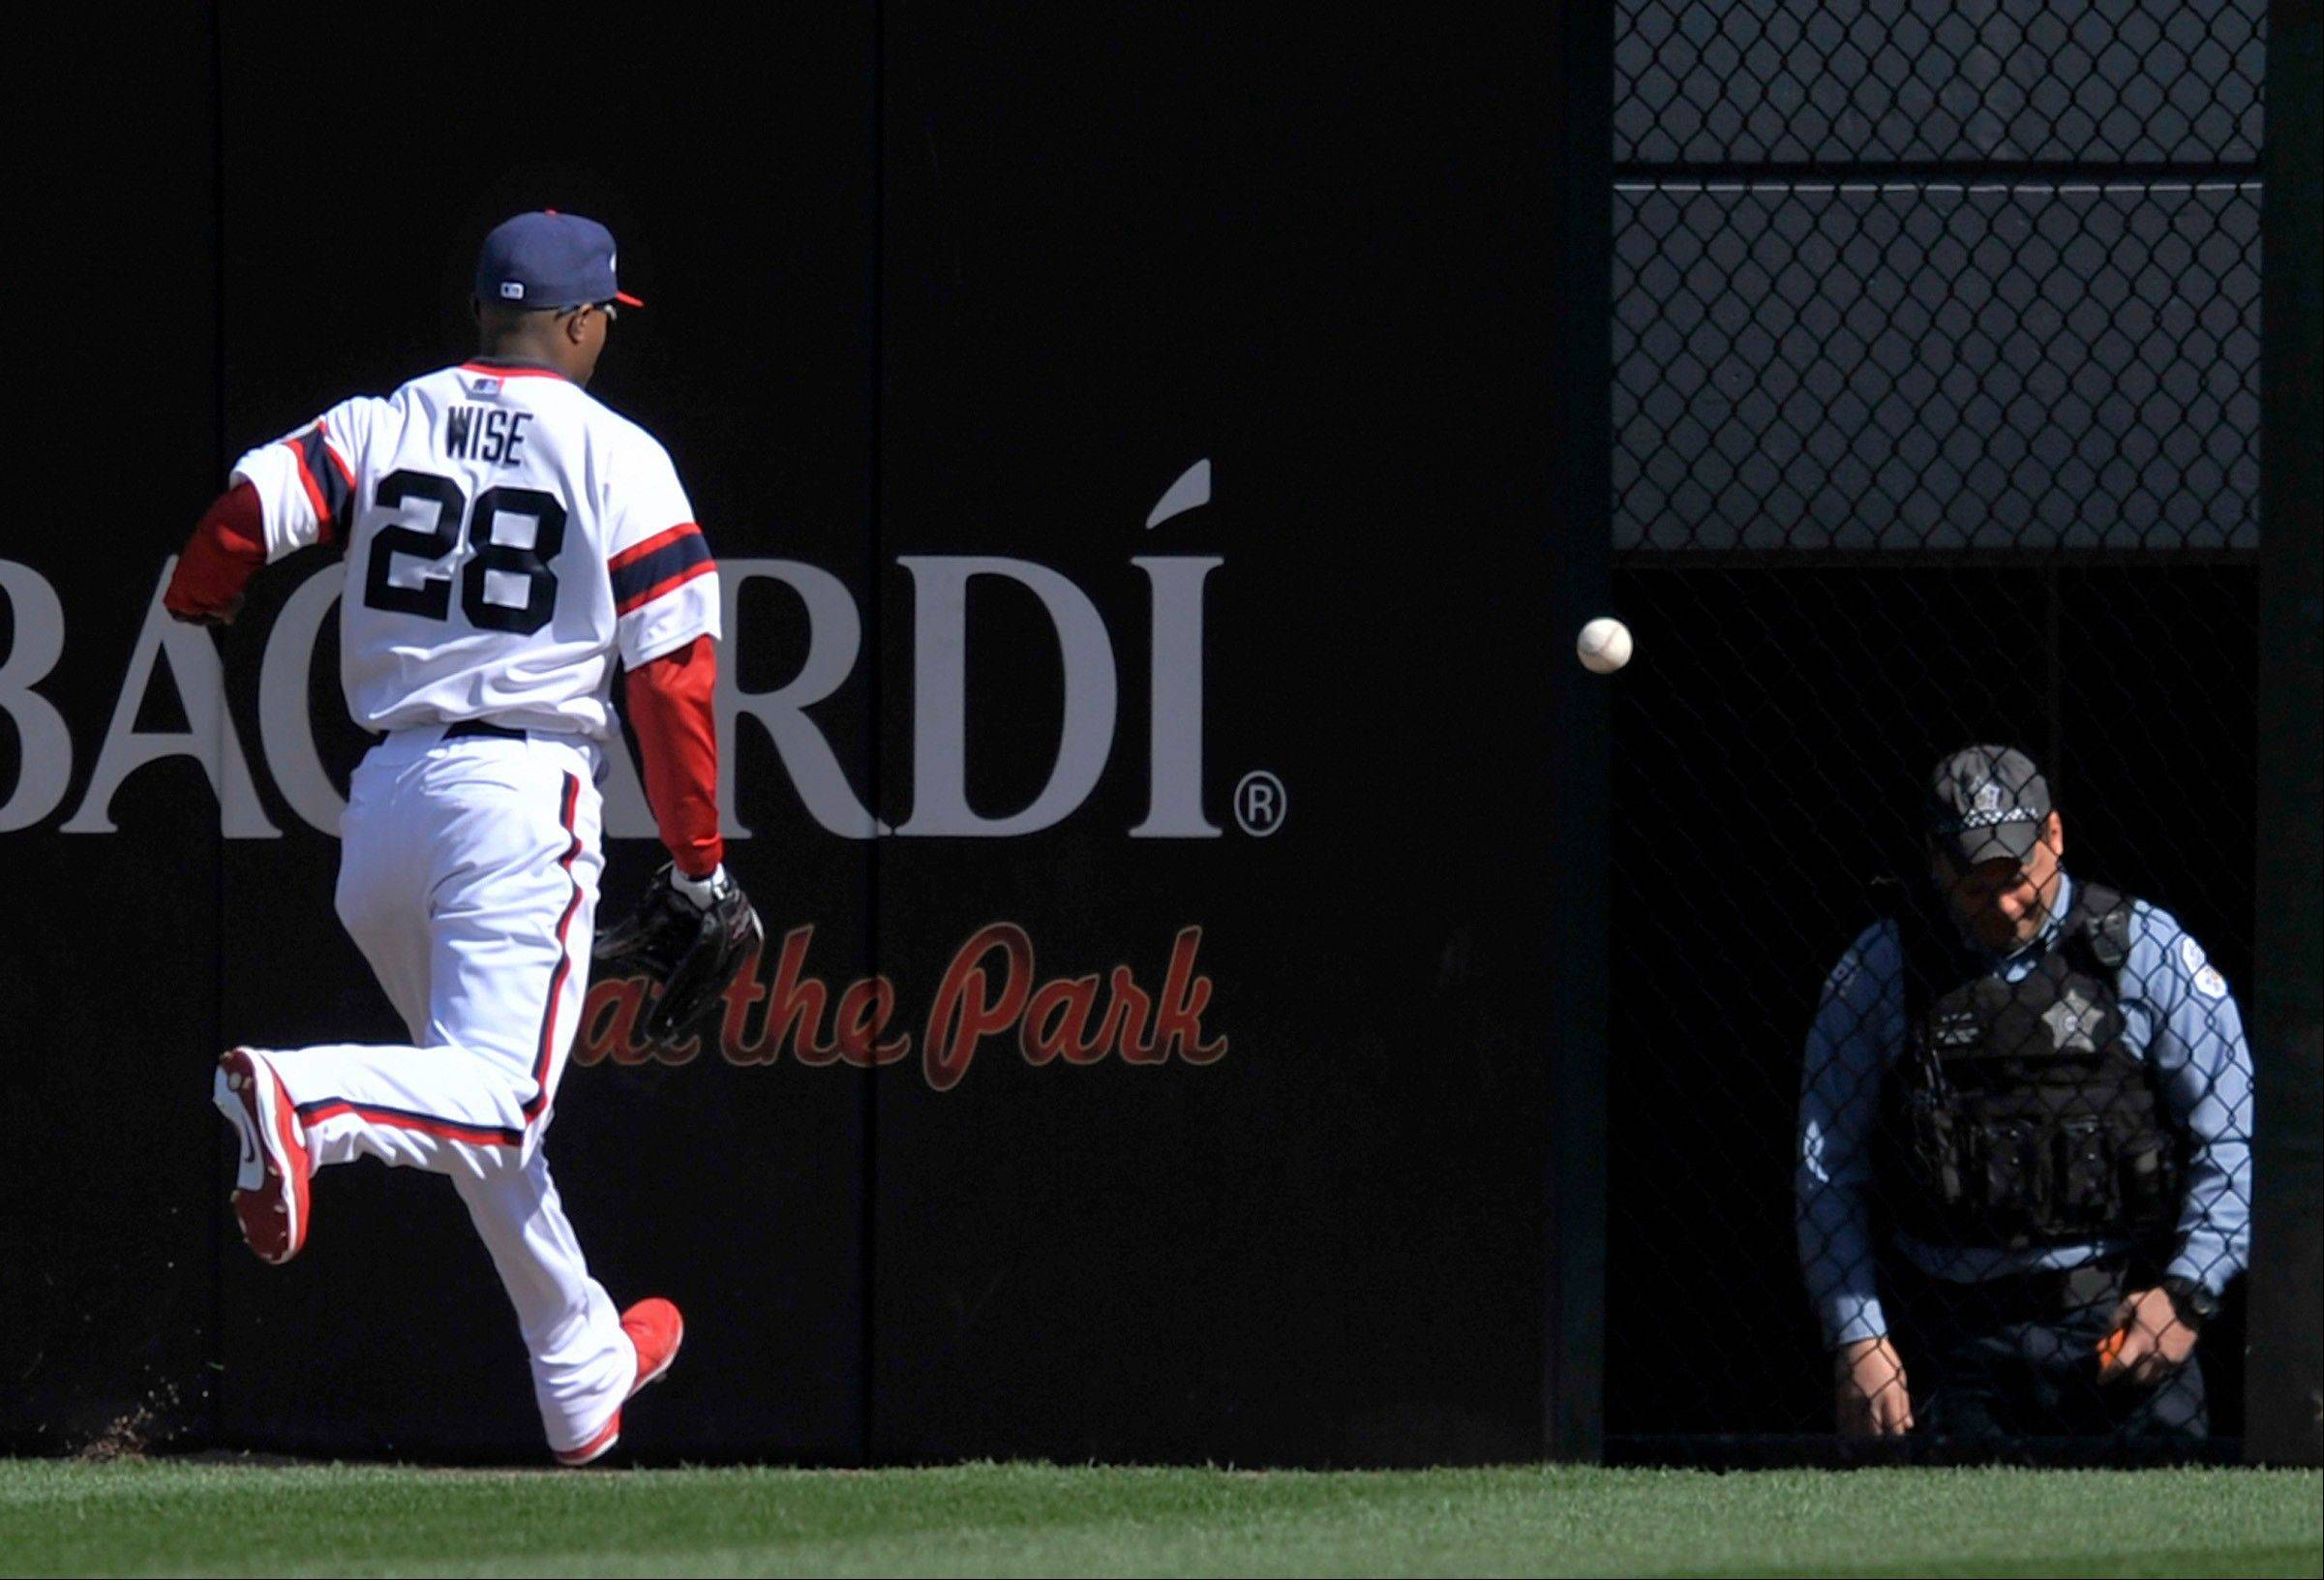 White Sox center fielder Dewayne Wise chases down a 3-run double by the Twins� Josh Willingham during the seventh inning Sunday at U.S. Cellular Field.